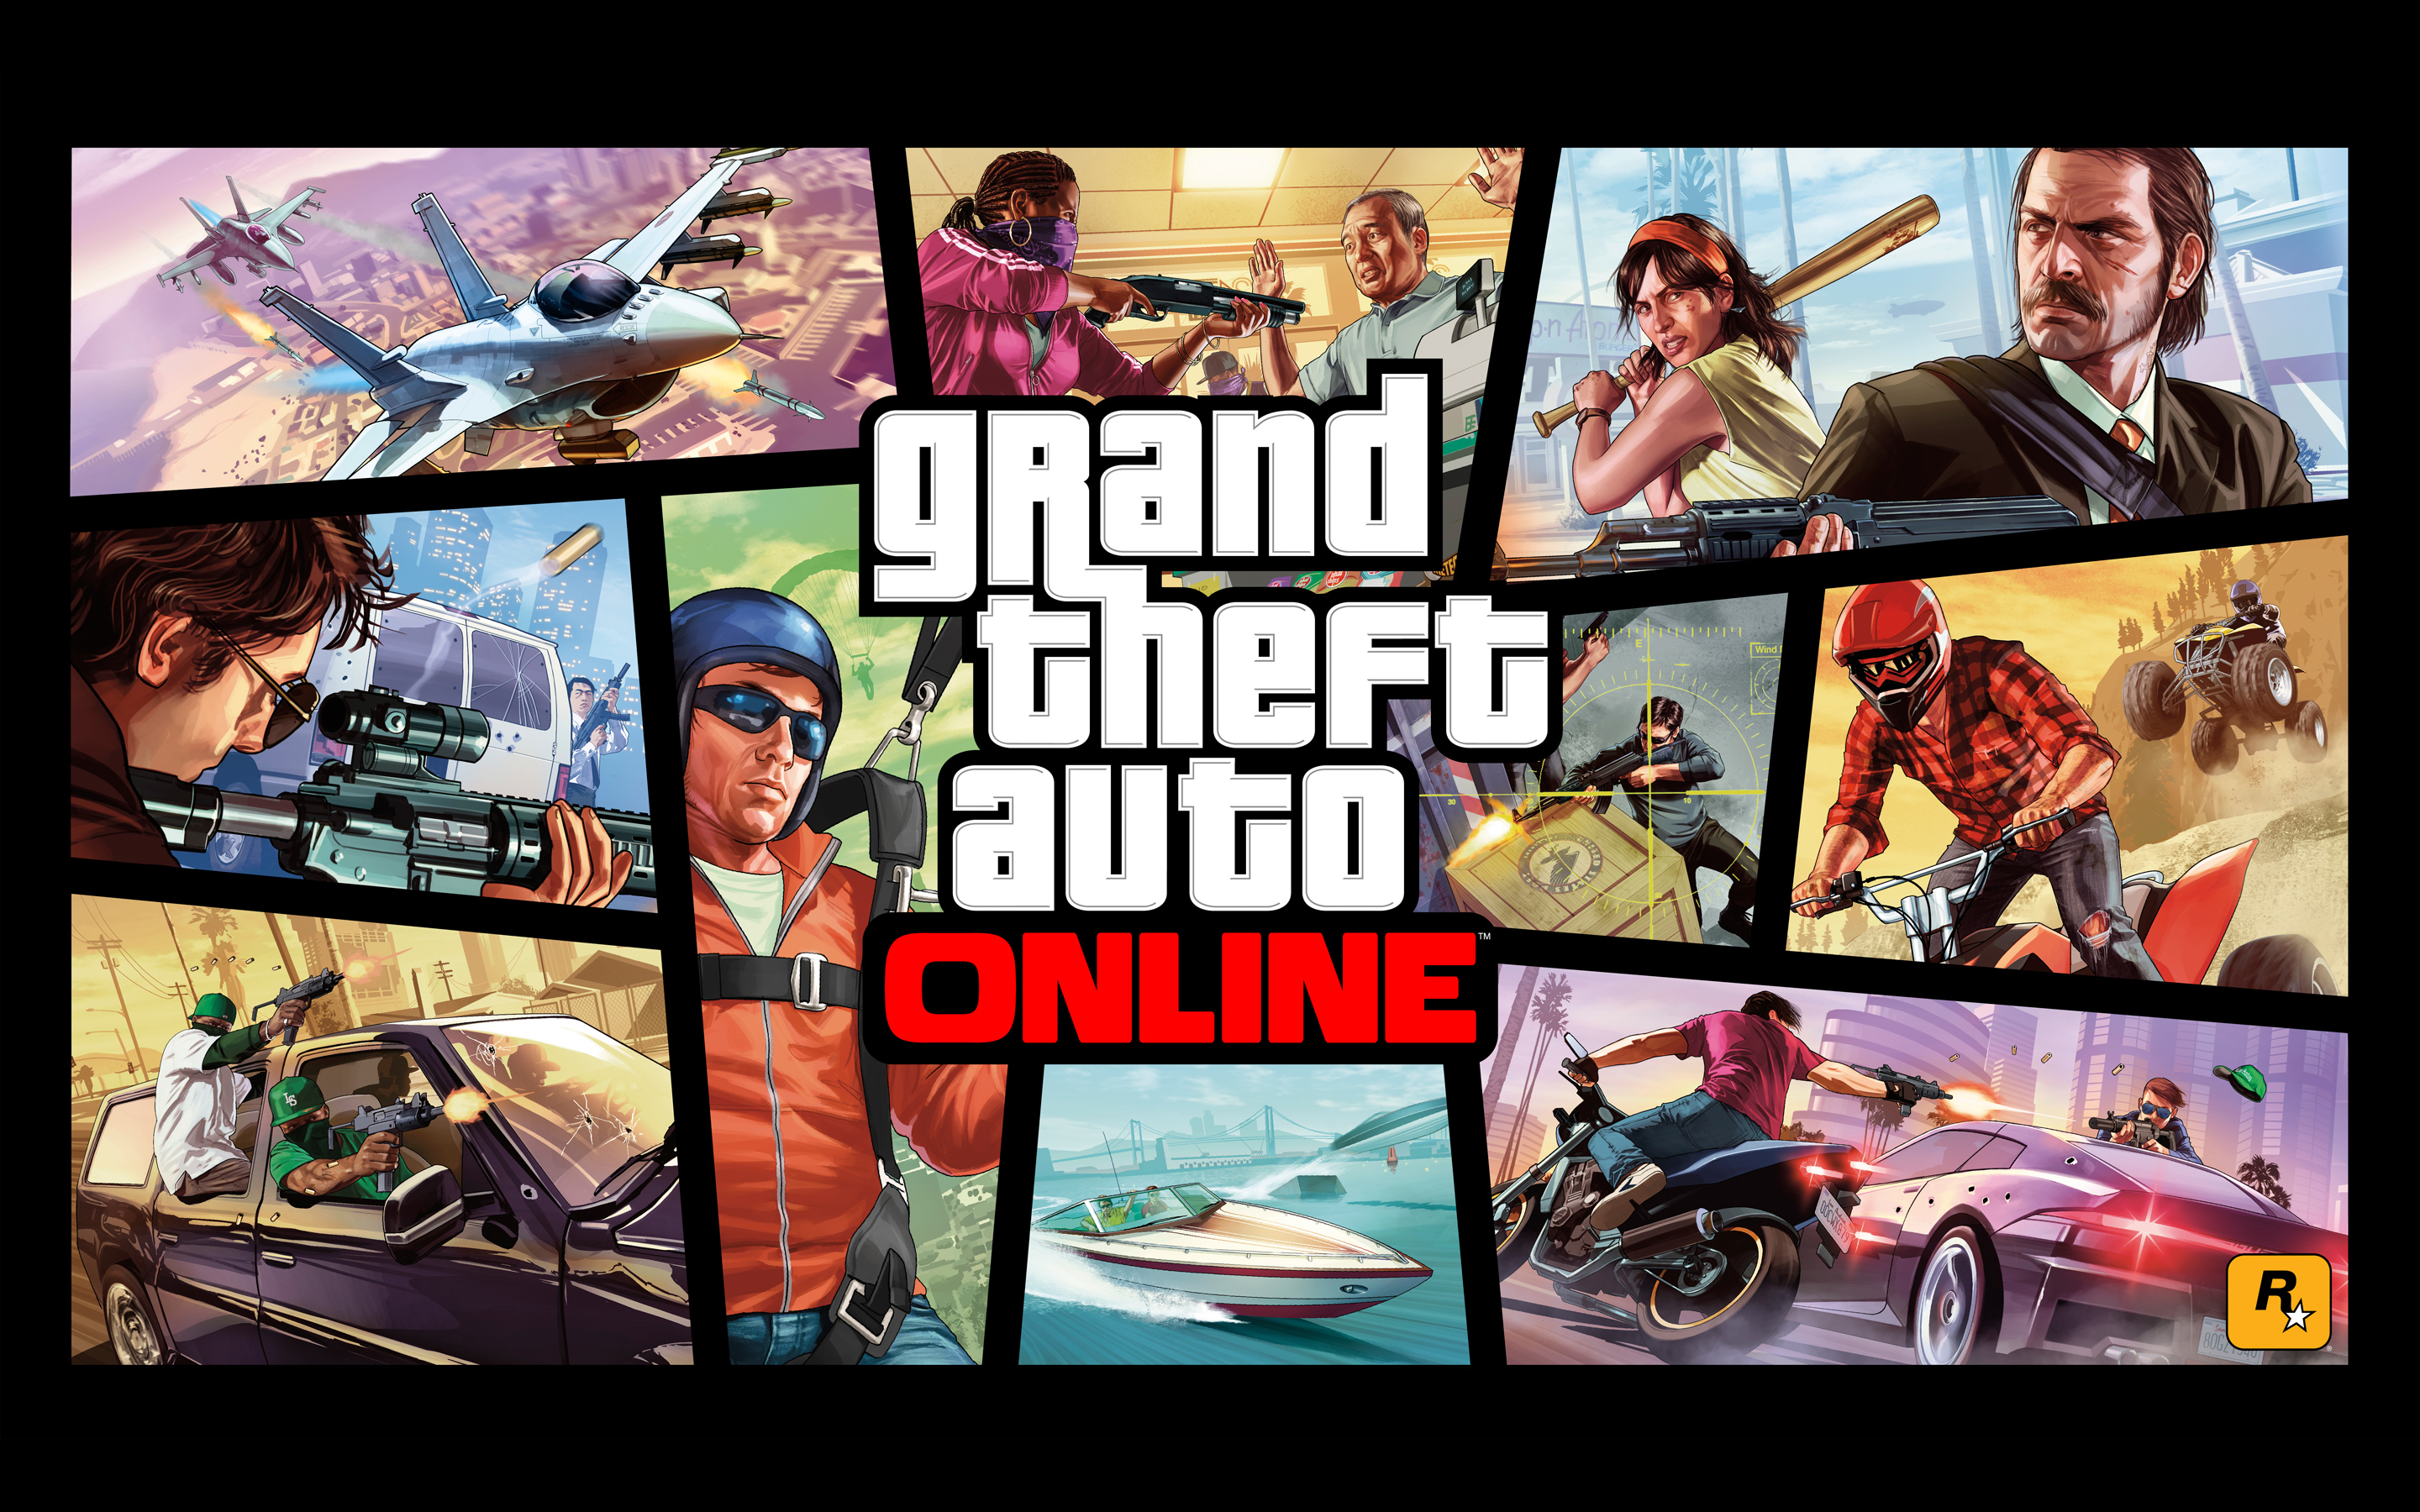 Grand Theft Auto Online 1110.5 Kb